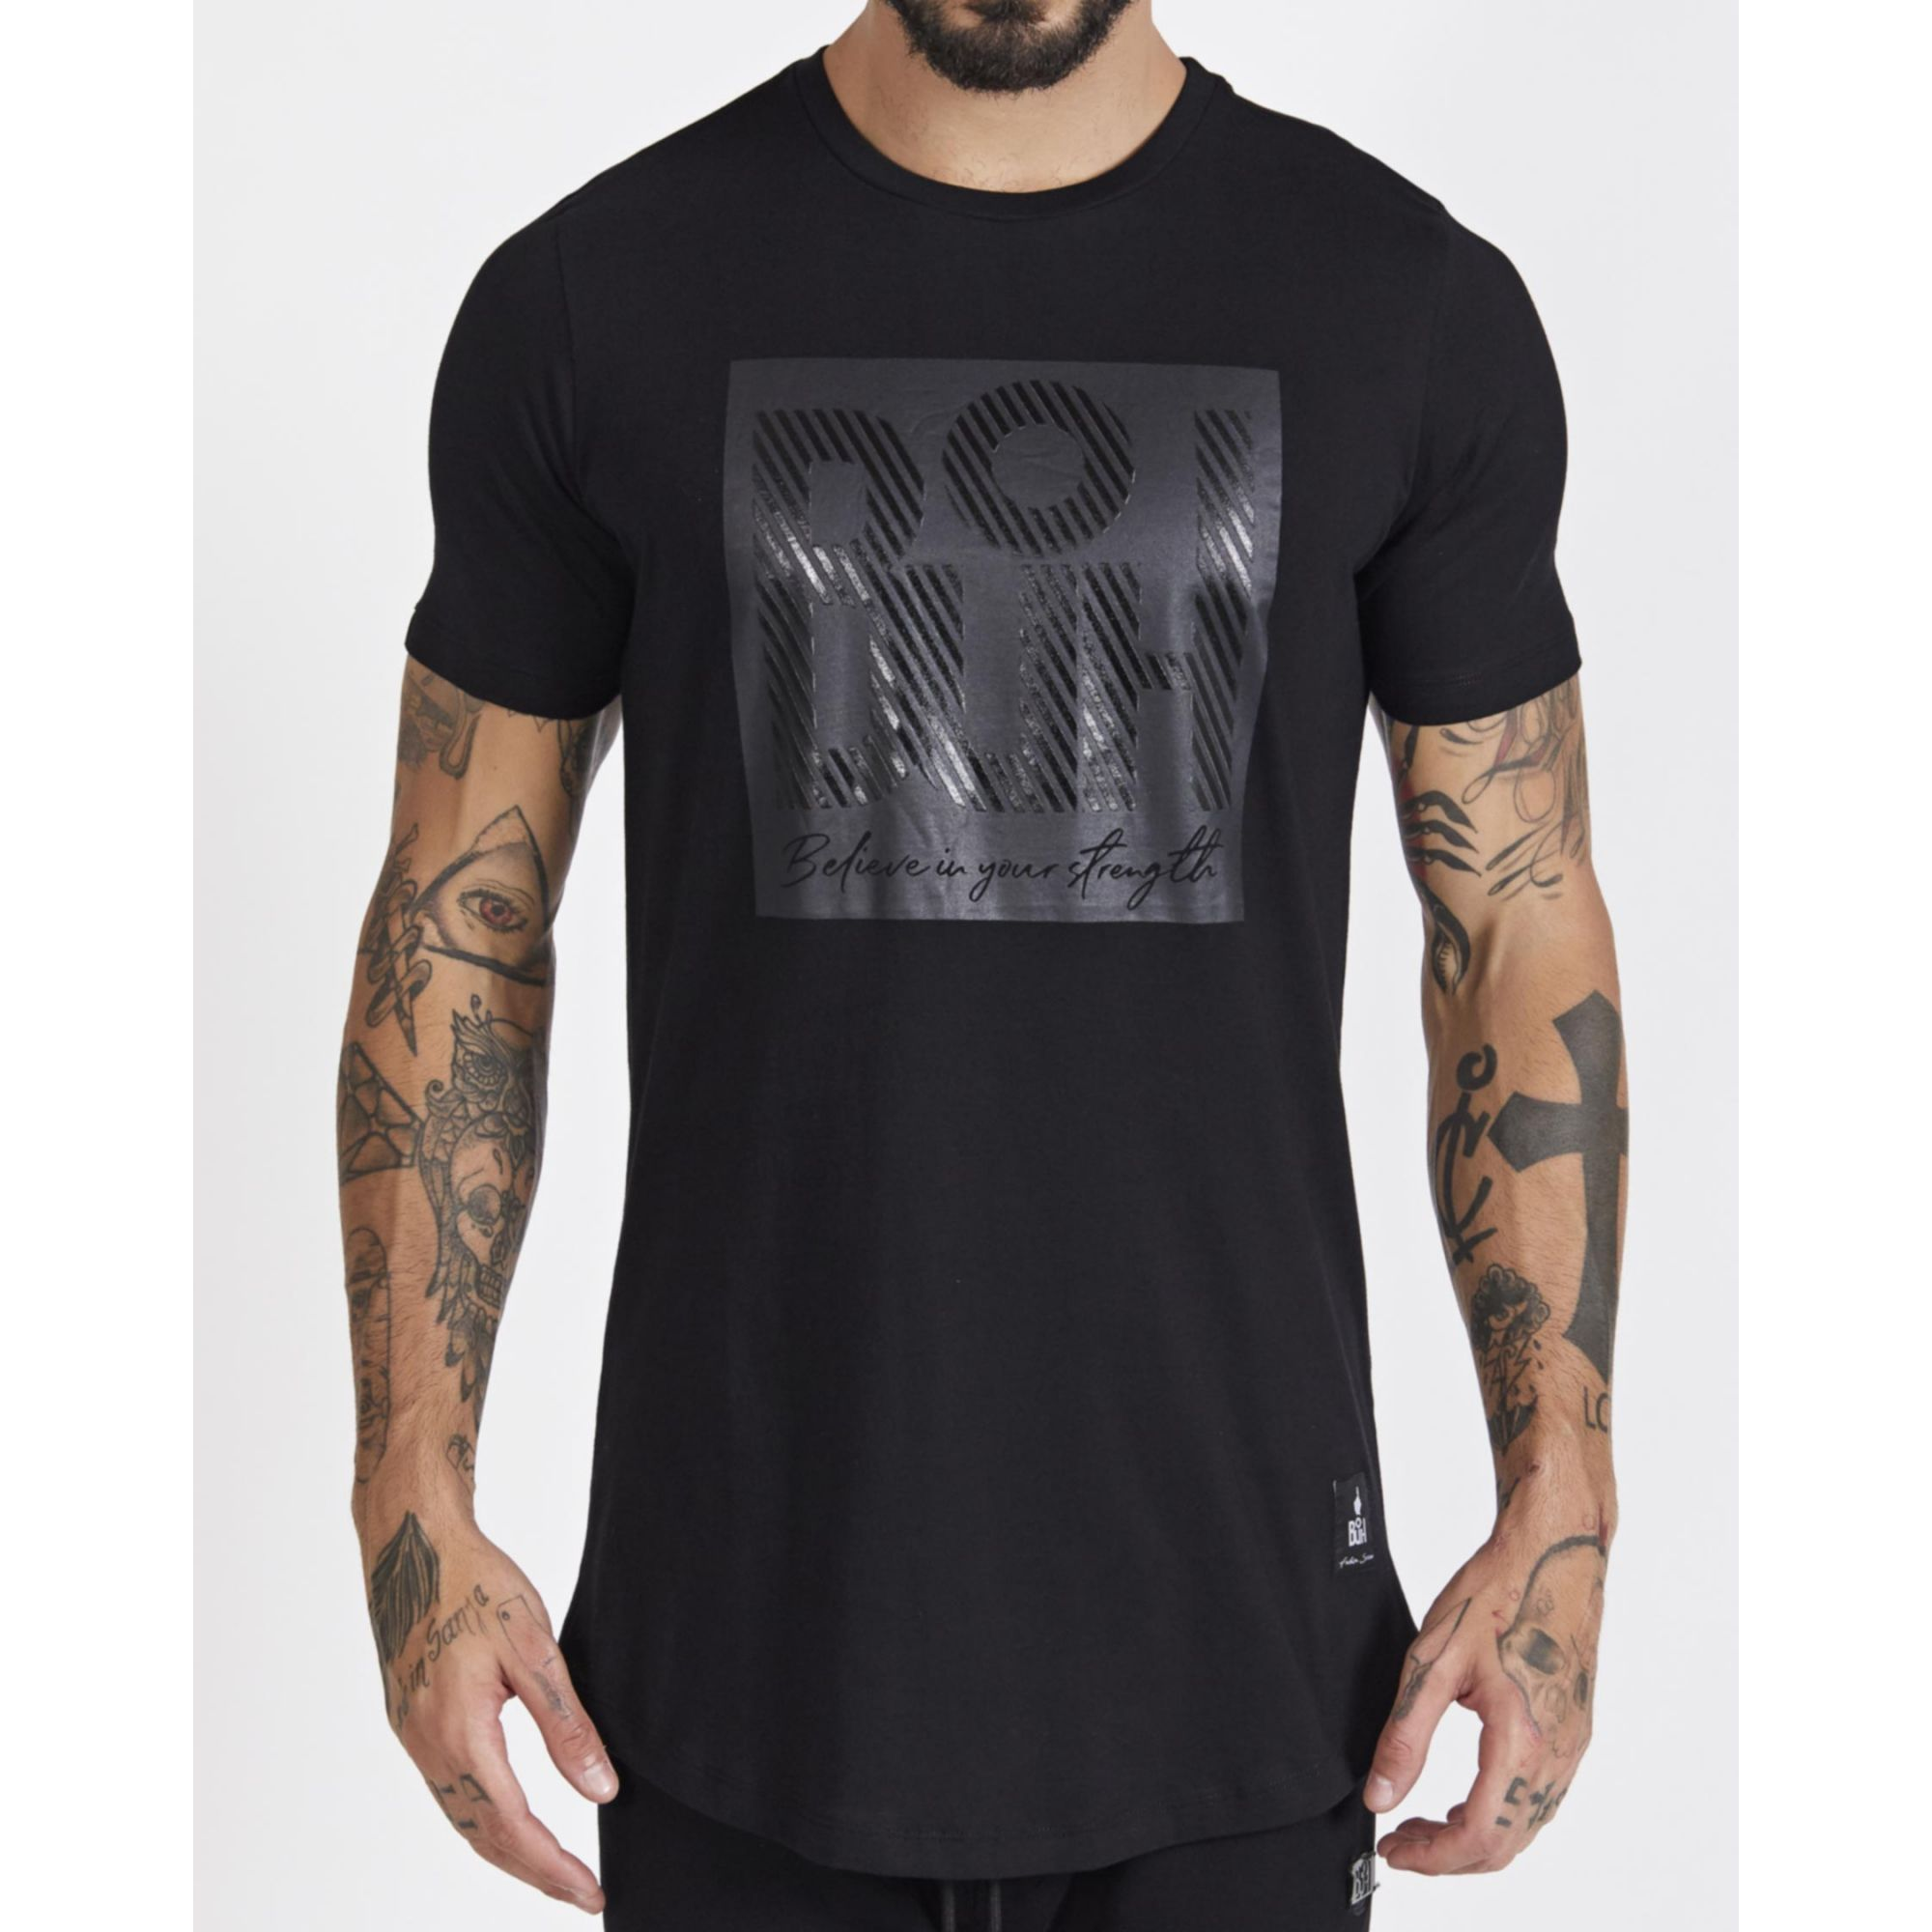 Camiseta Buh Square Believe All Black